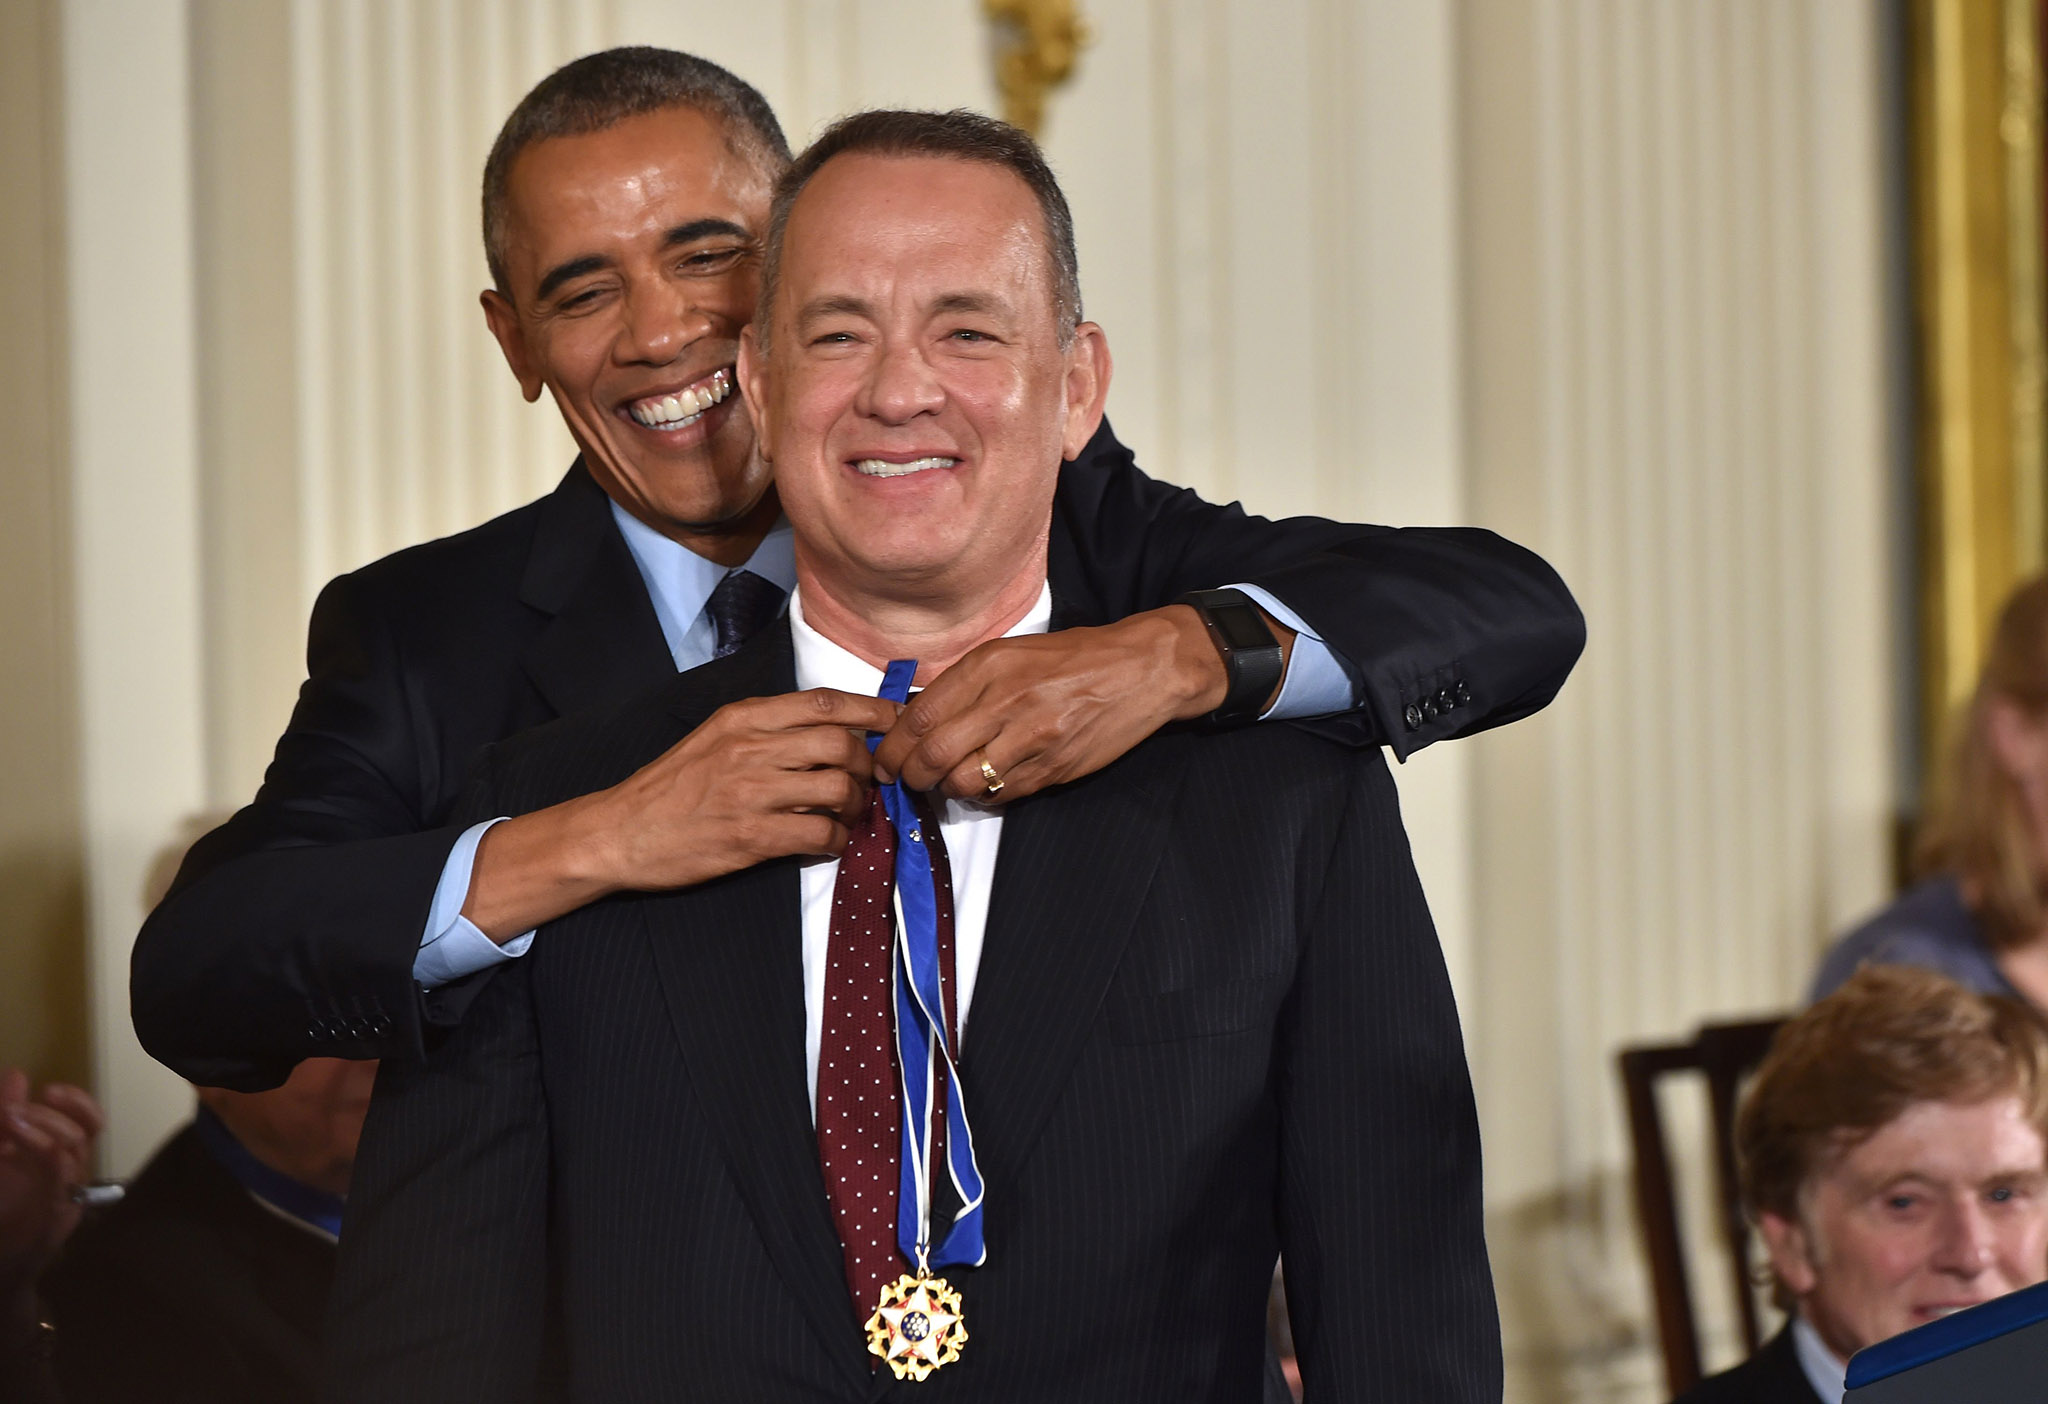 US President Barack Obama presents actor Tom Hanks with the Presidential Medal of Freedom, the nation's highest civilian honor, during a ceremony honoring 21 recipients, in the East Room of the White House in Washington, DC, November 22, 2016. / AFP PHOTO / Nicholas KammNICHOLAS KAMM/AFP/Getty Images